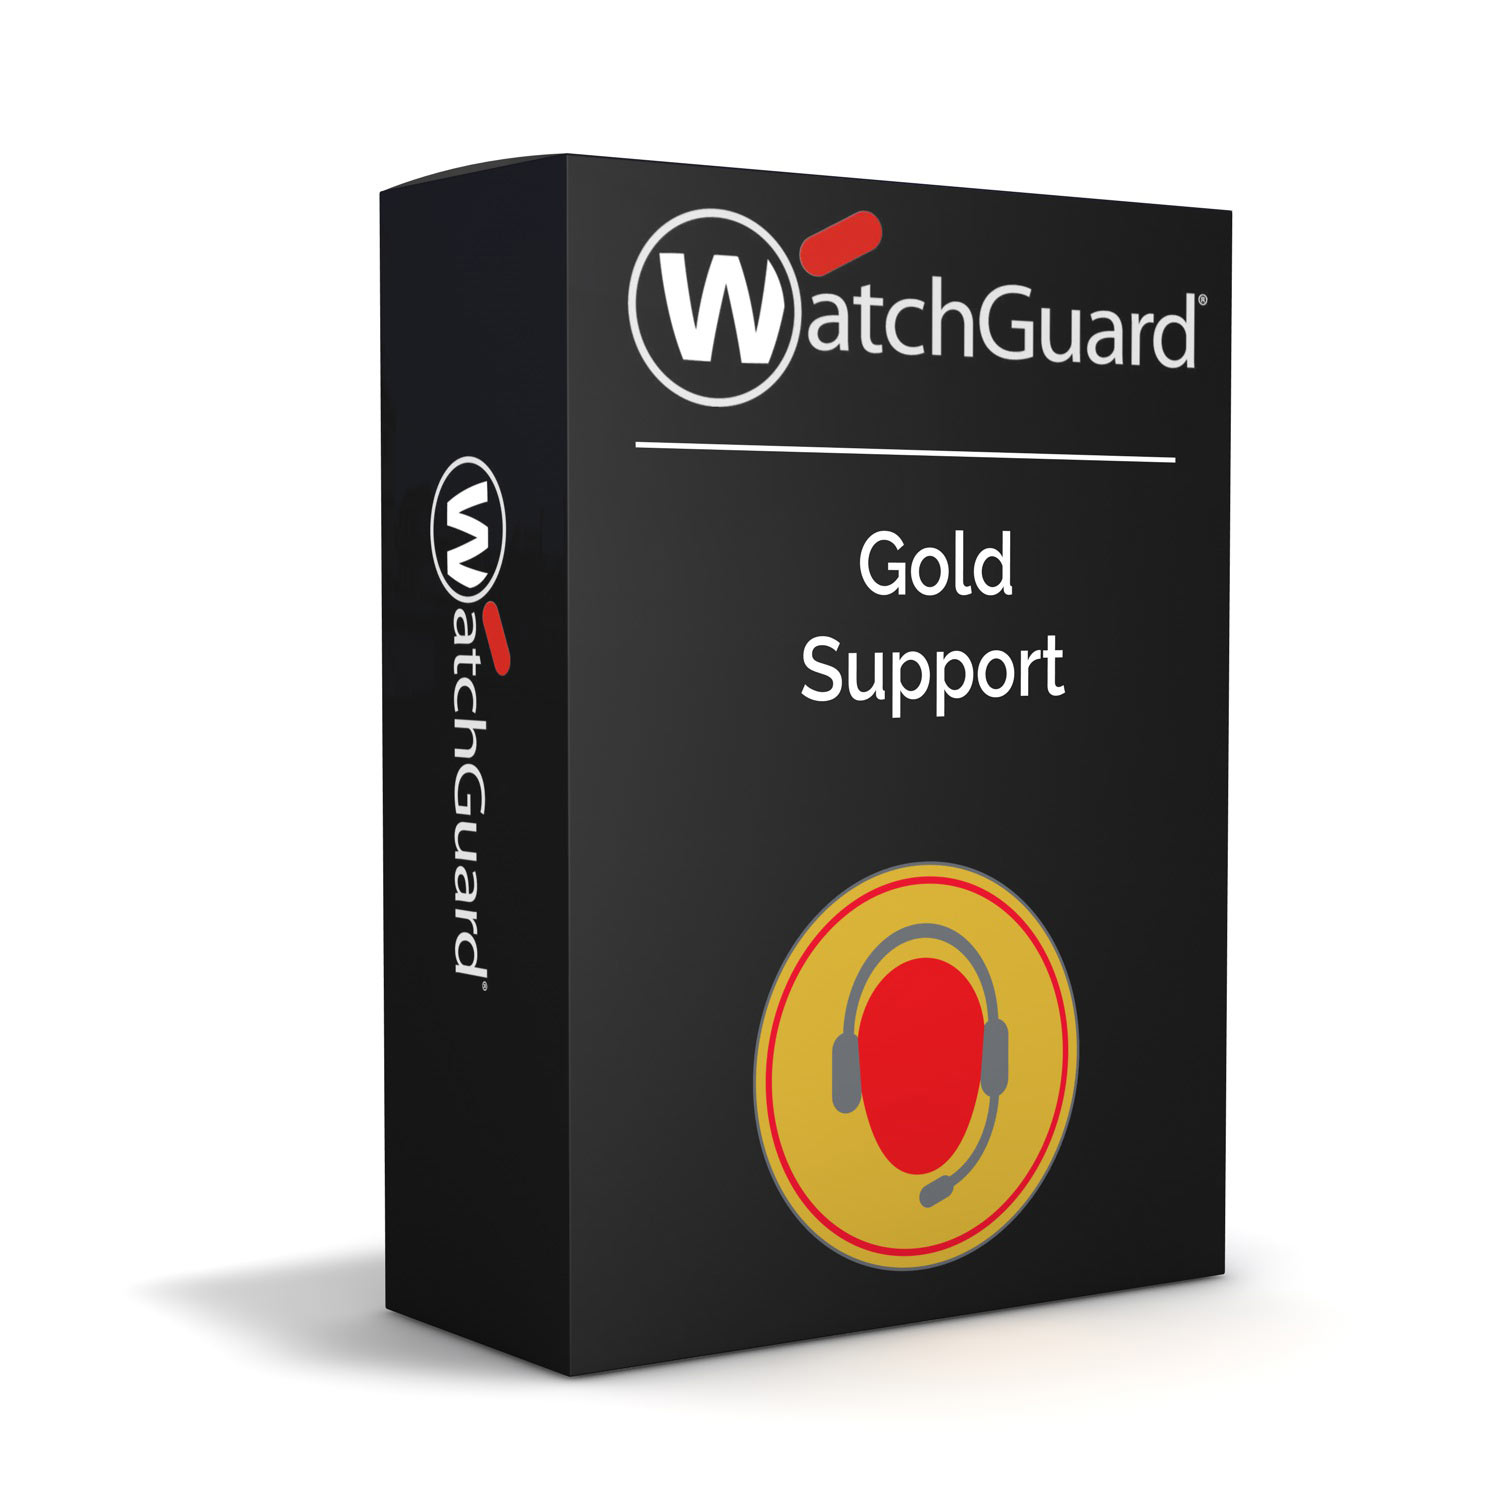 WatchGuard Gold Support Renewal/Upgrade 1-yr for Firebox T55-W